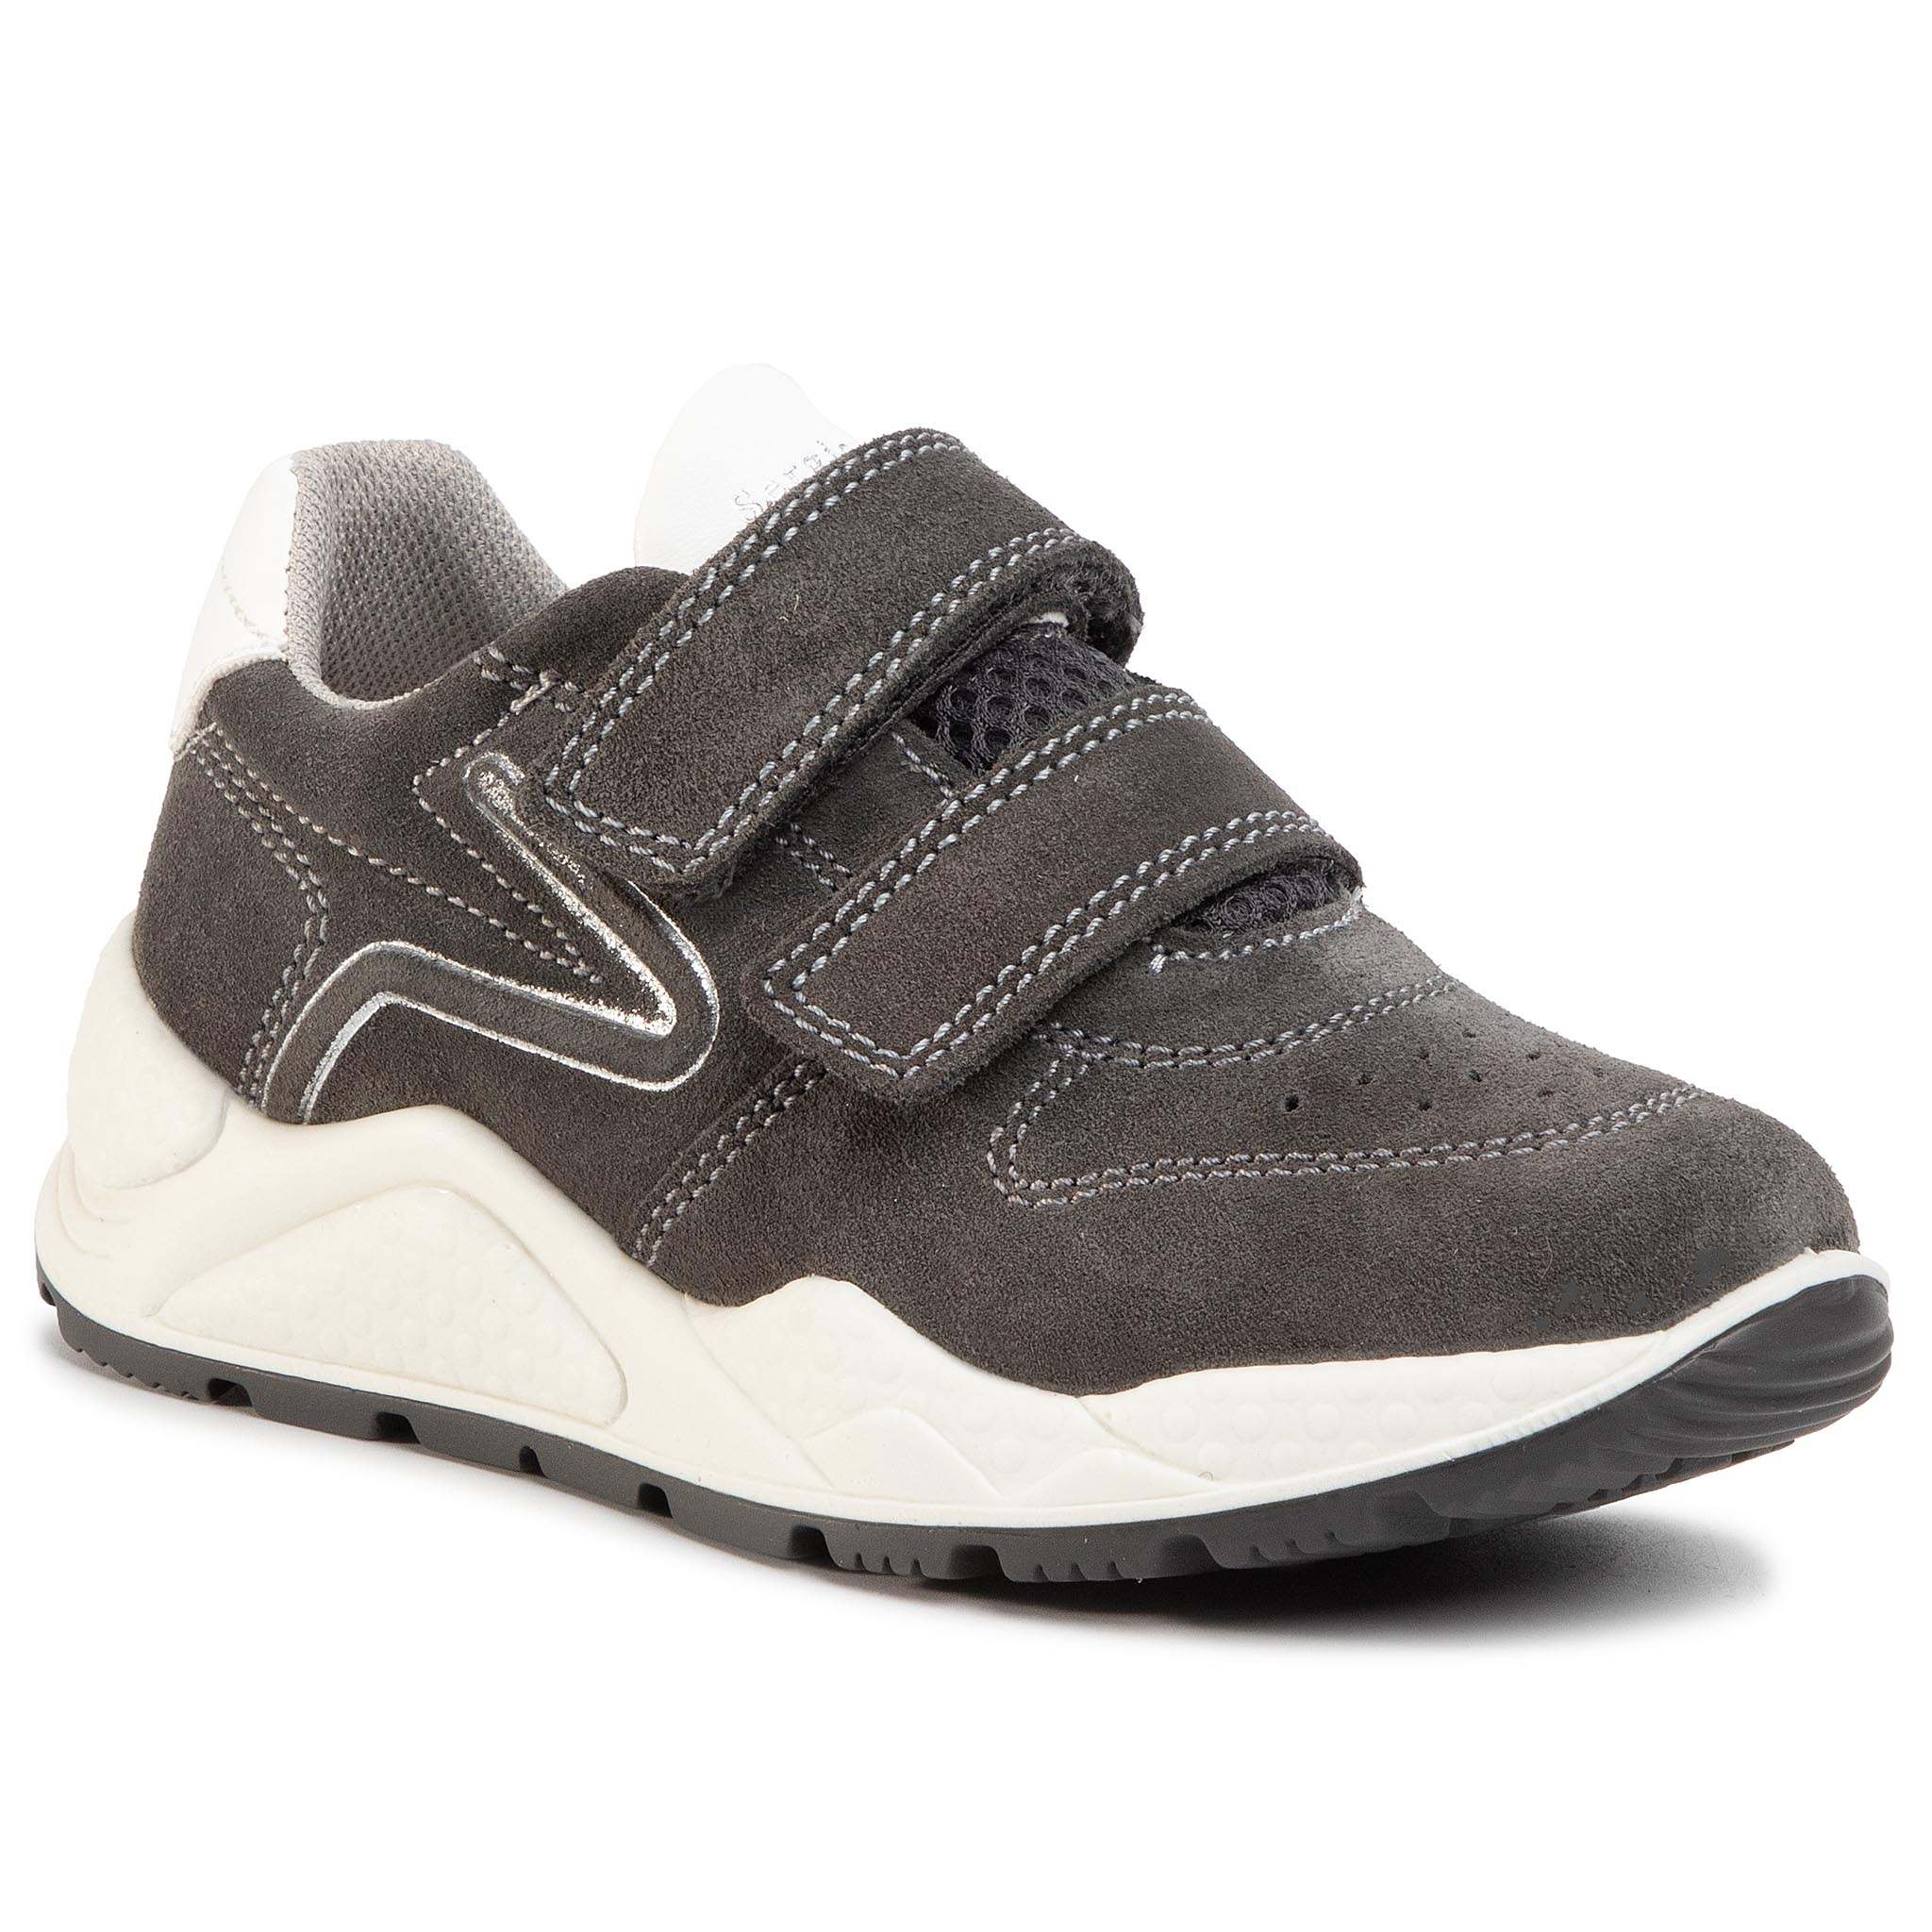 Sneakers SERGIO BARDI YOUNG - SBY-02-03-000034 266